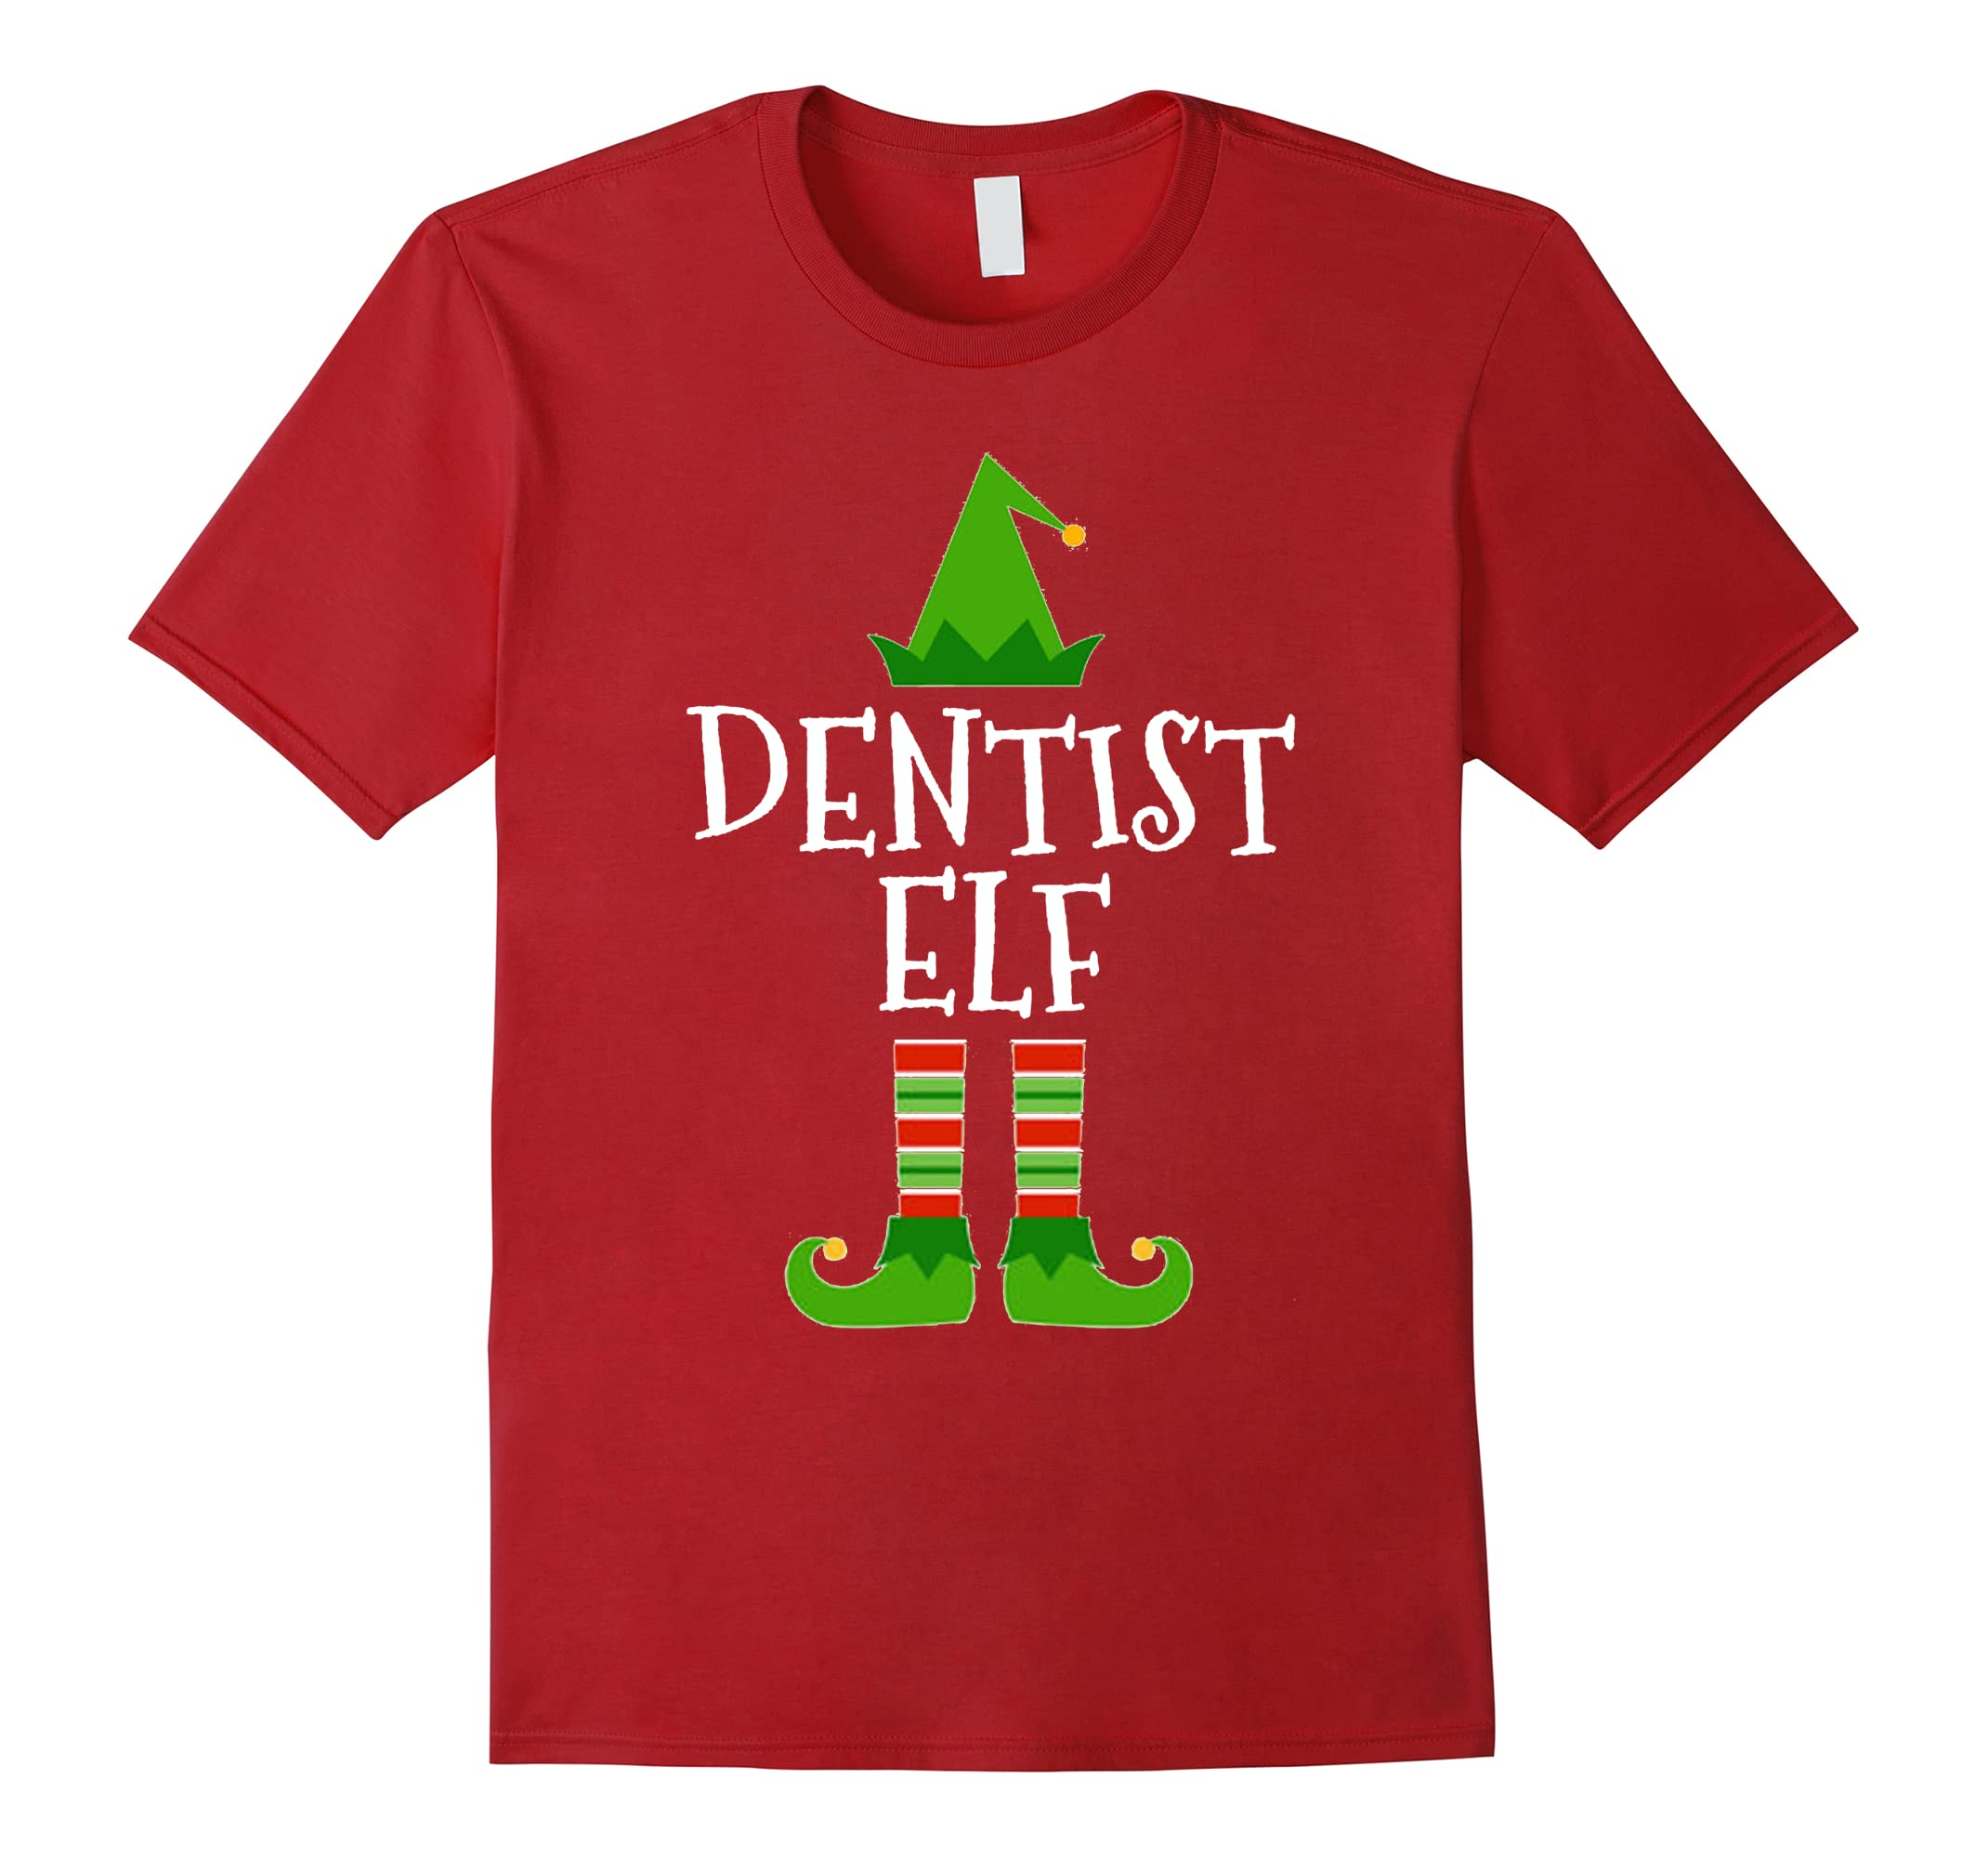 Christmas Dentist Elf.Dentist Elf Funny Dental Christmas T Shirt Rt